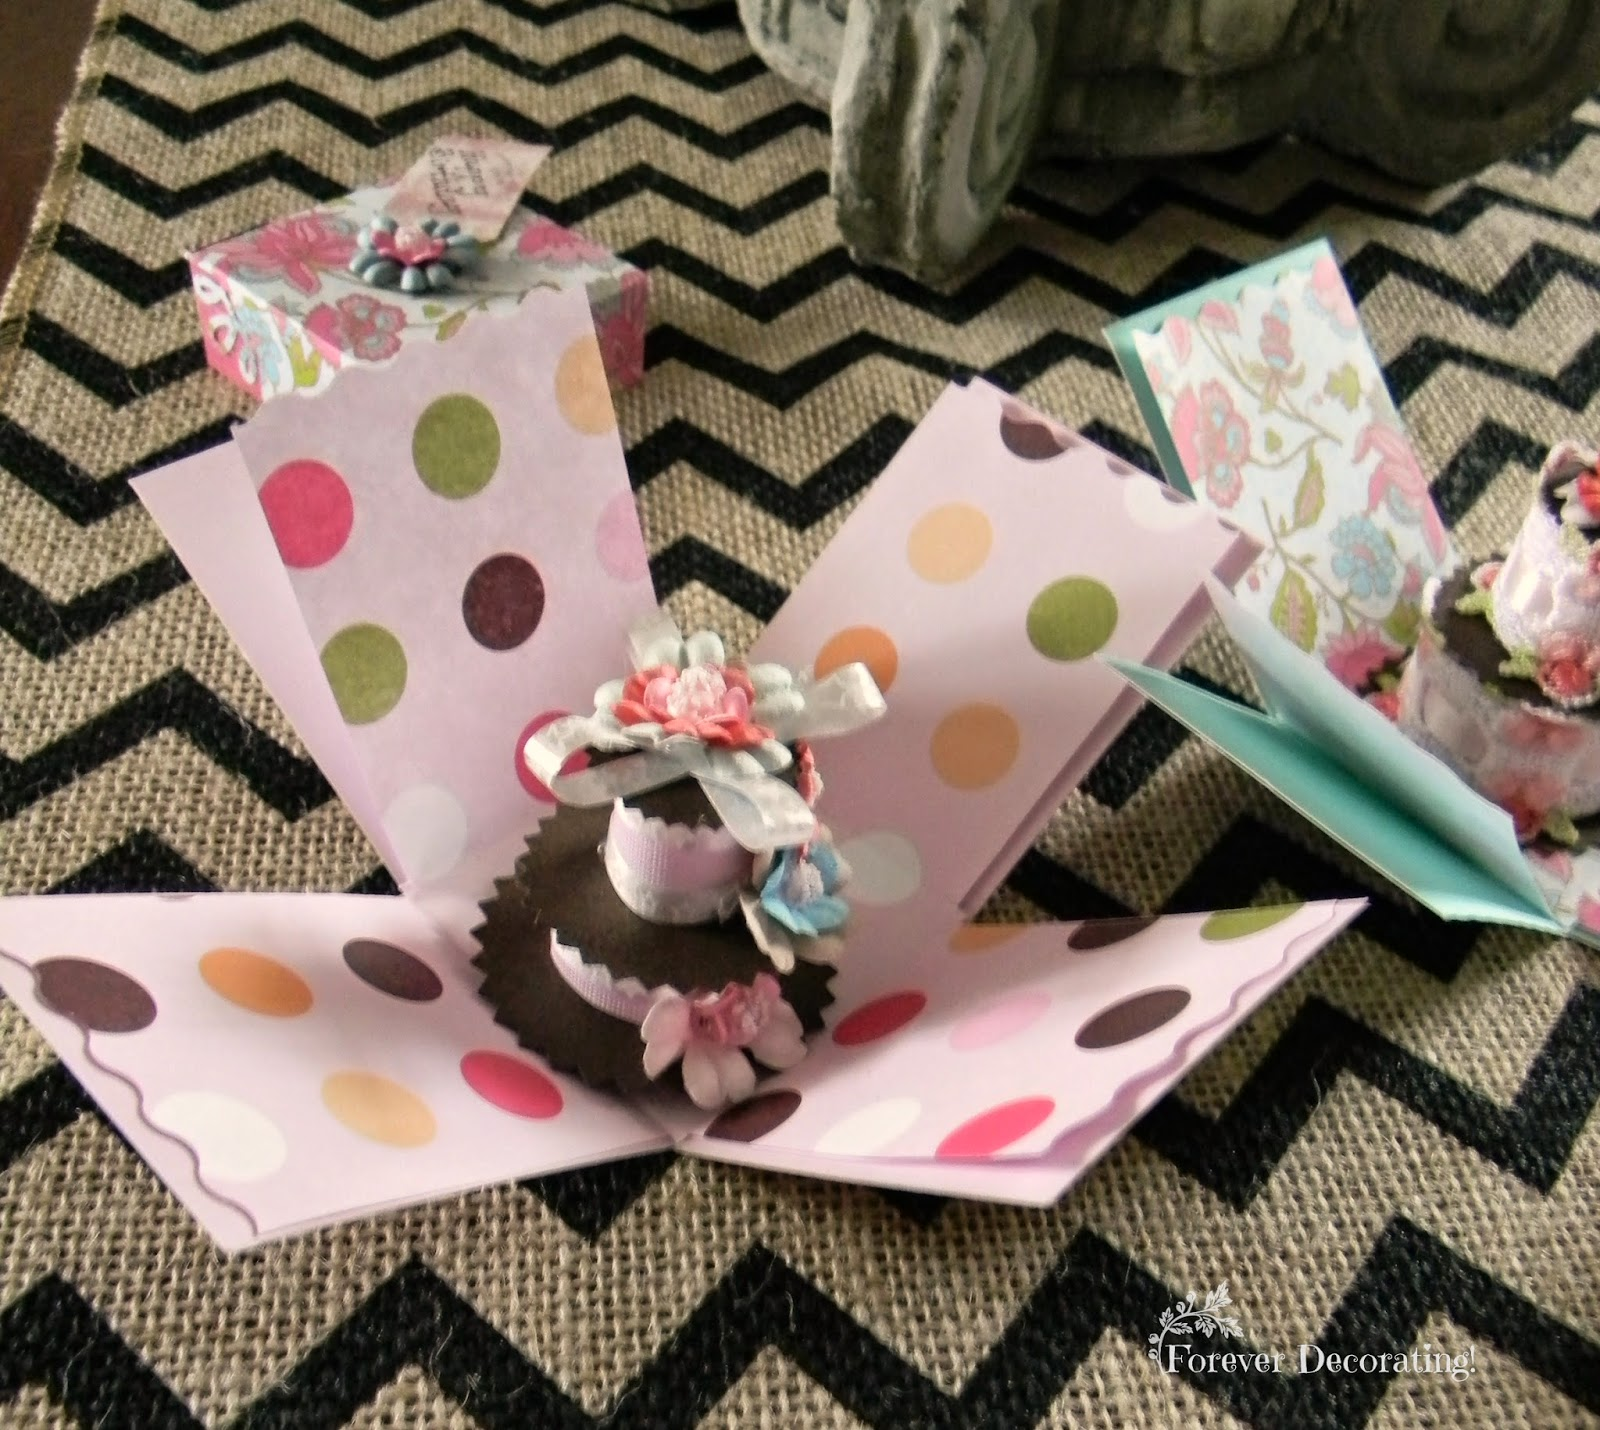 Forever Decorating!: Birthday Surprise Box Cards